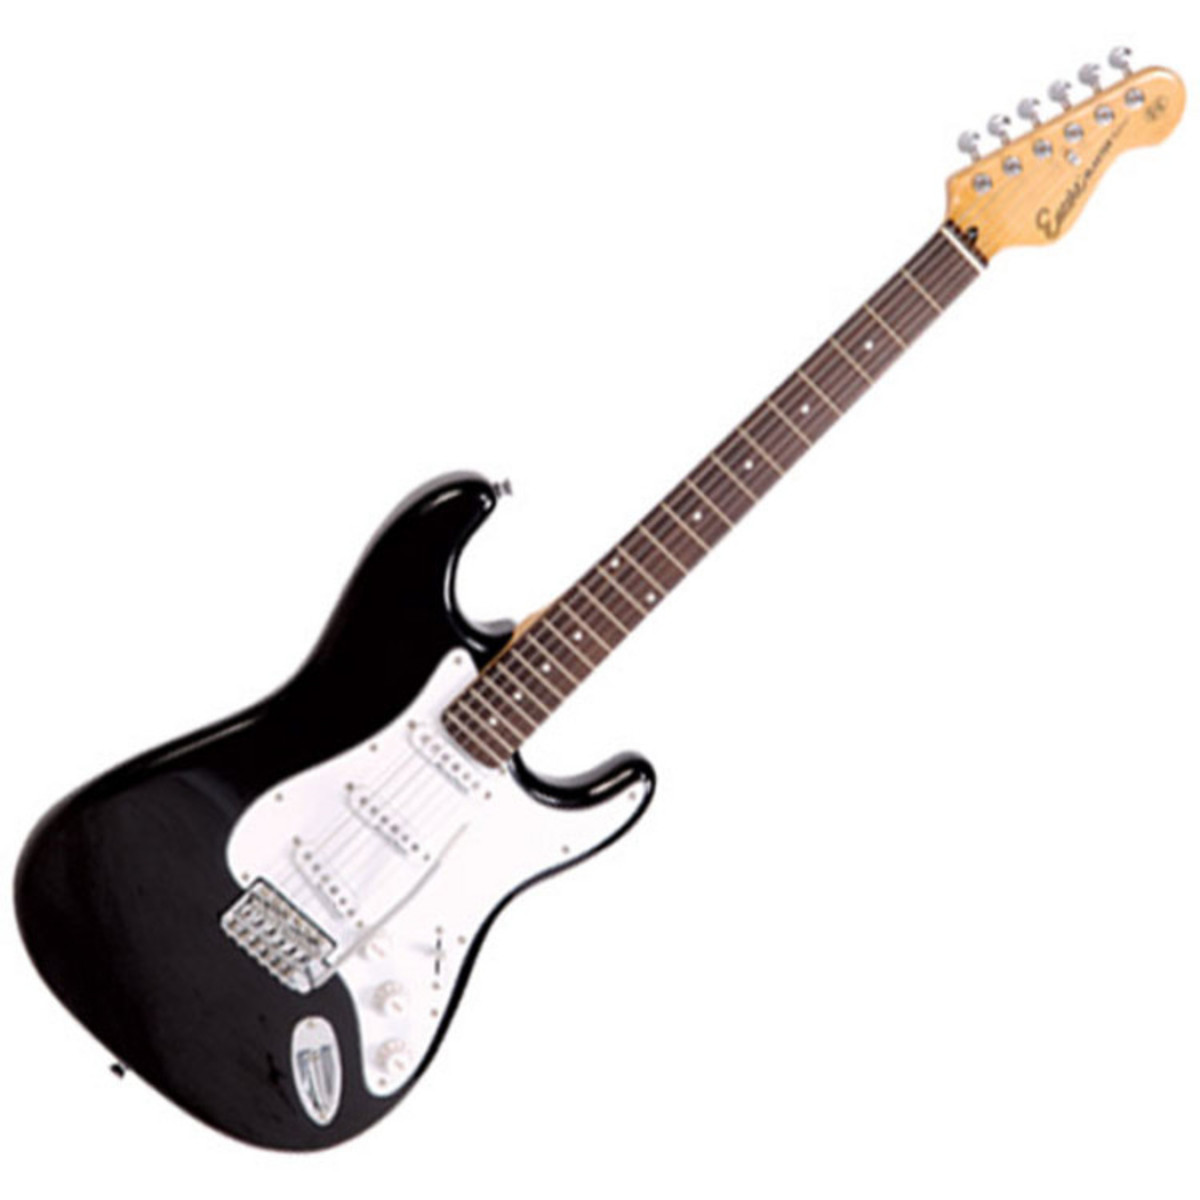 disc rocksmith xbox 360 encore electric guitar black at. Black Bedroom Furniture Sets. Home Design Ideas